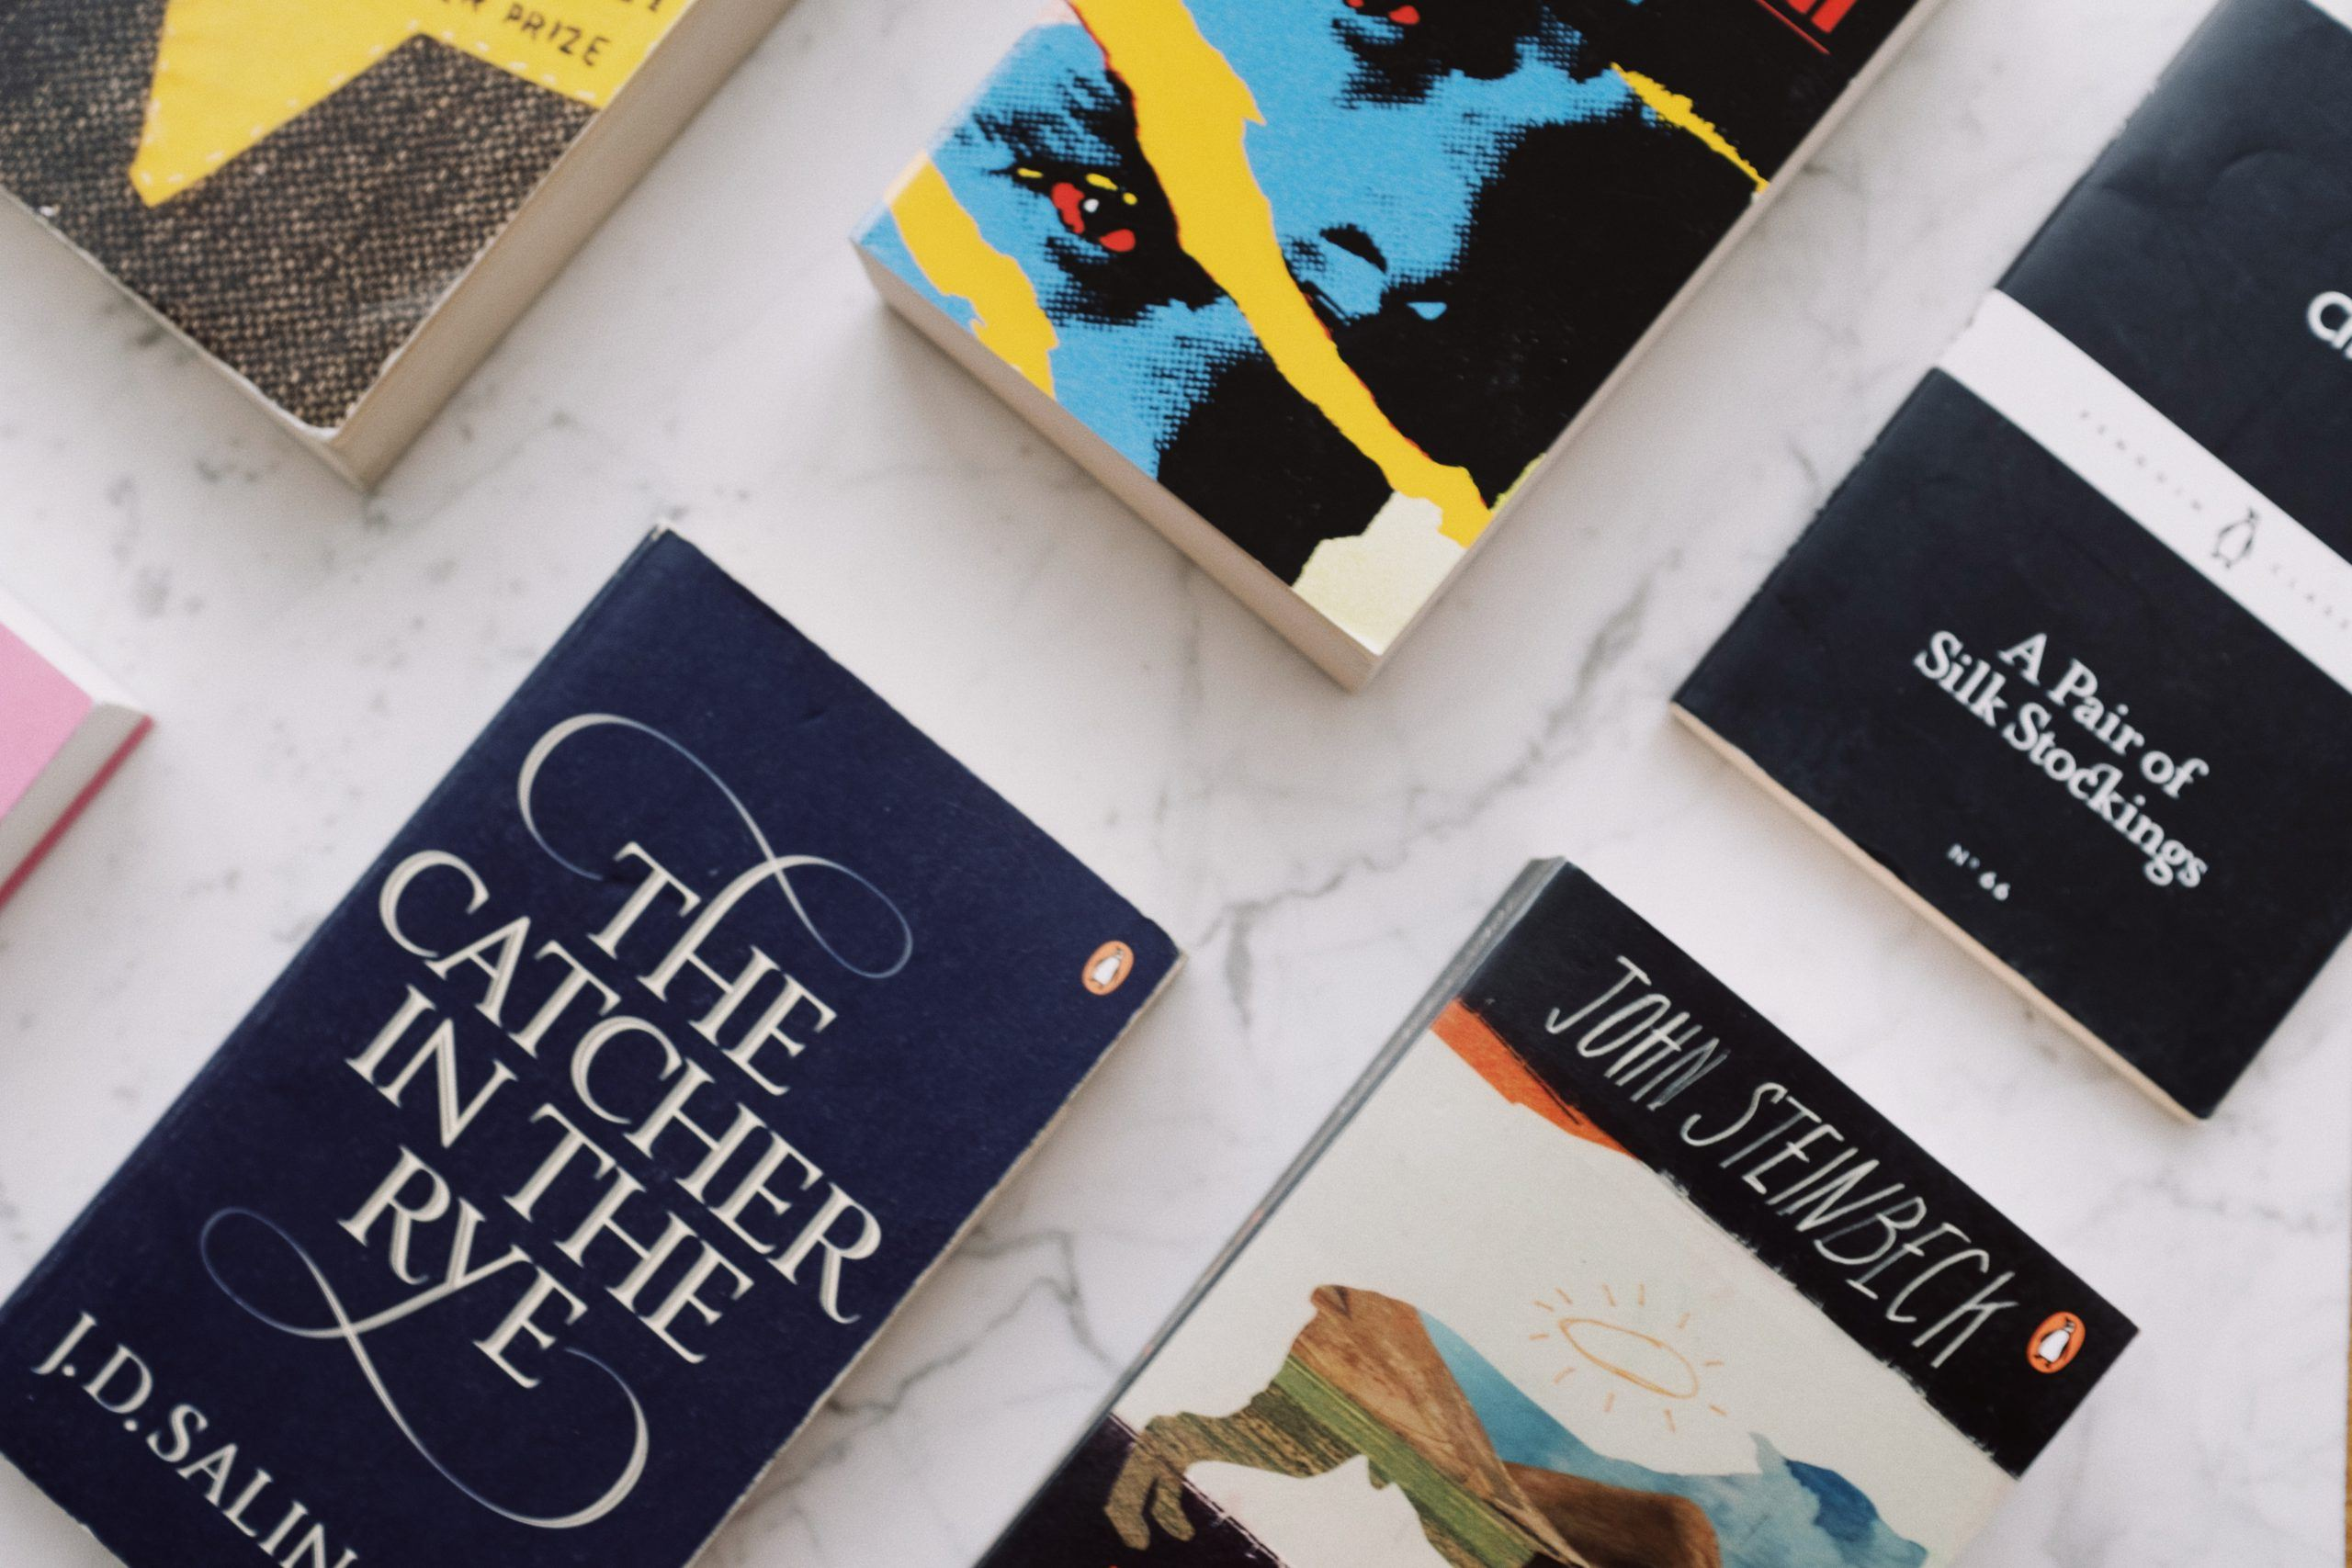 Books laid out in a grid, including The Catcher in the Rye and A Pair of Silk Stockings.